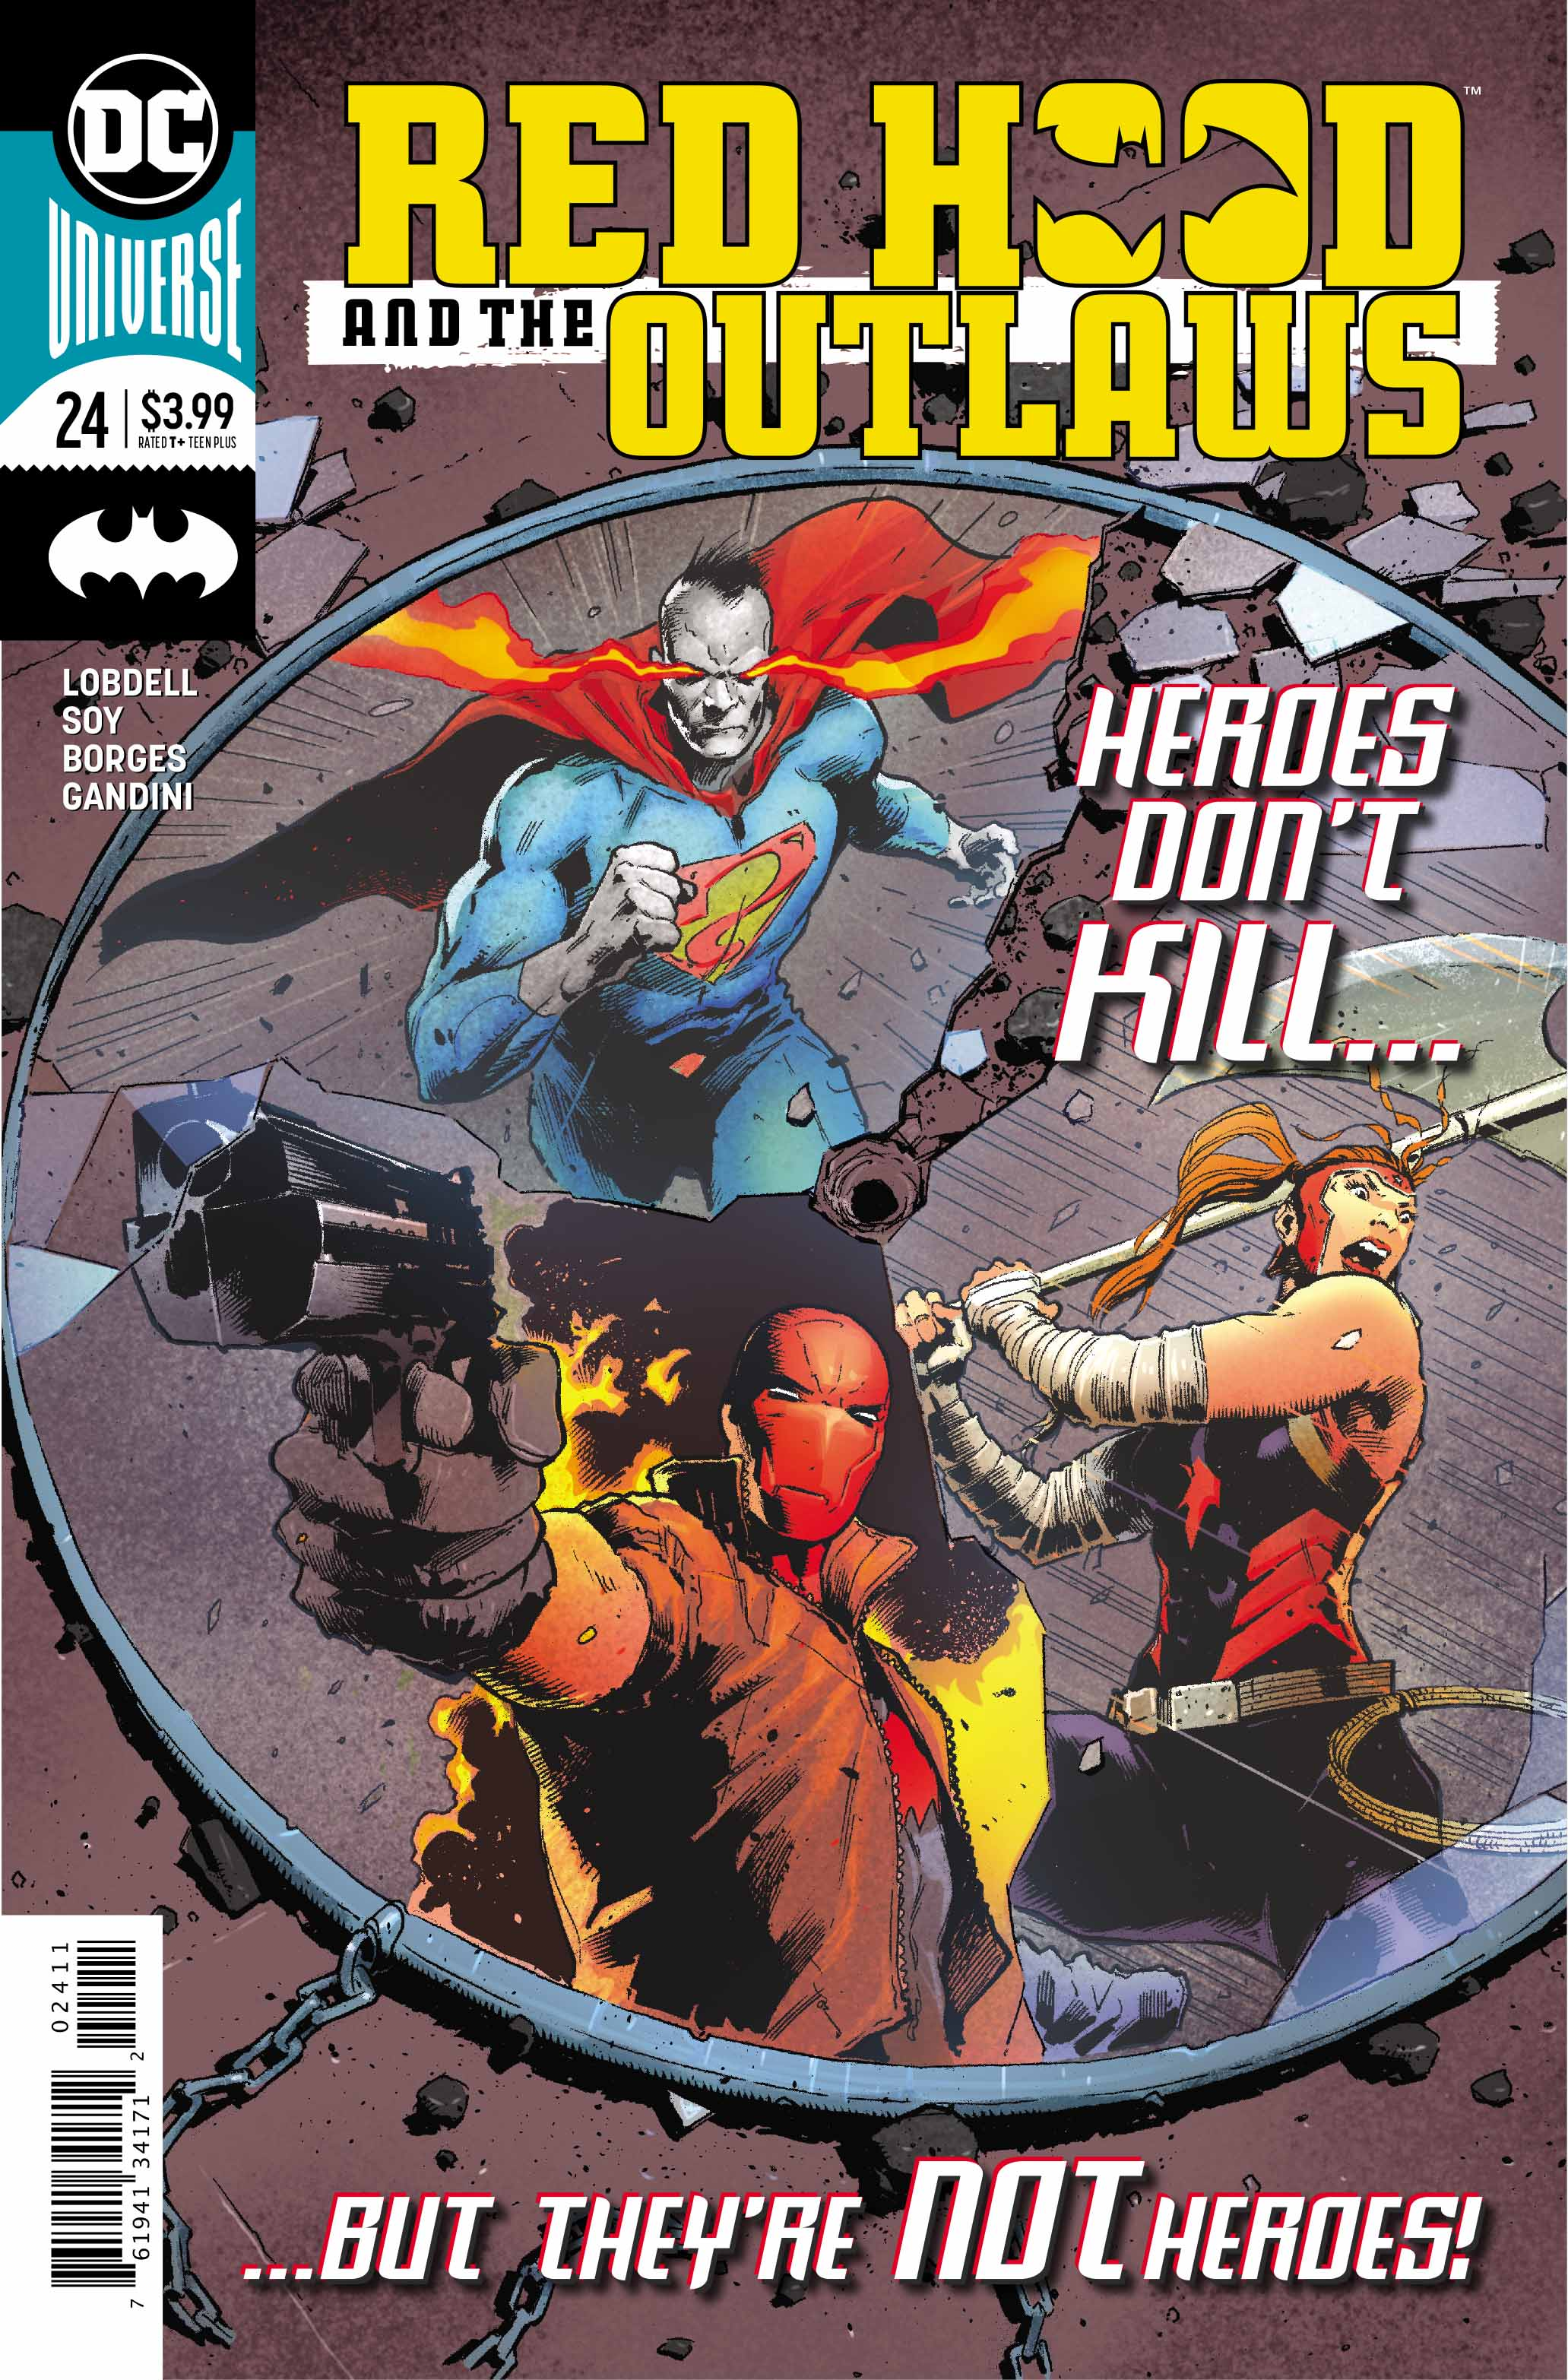 Red Hood and the Outlaws #24 review: Exciting, explosive, and one of the best yet